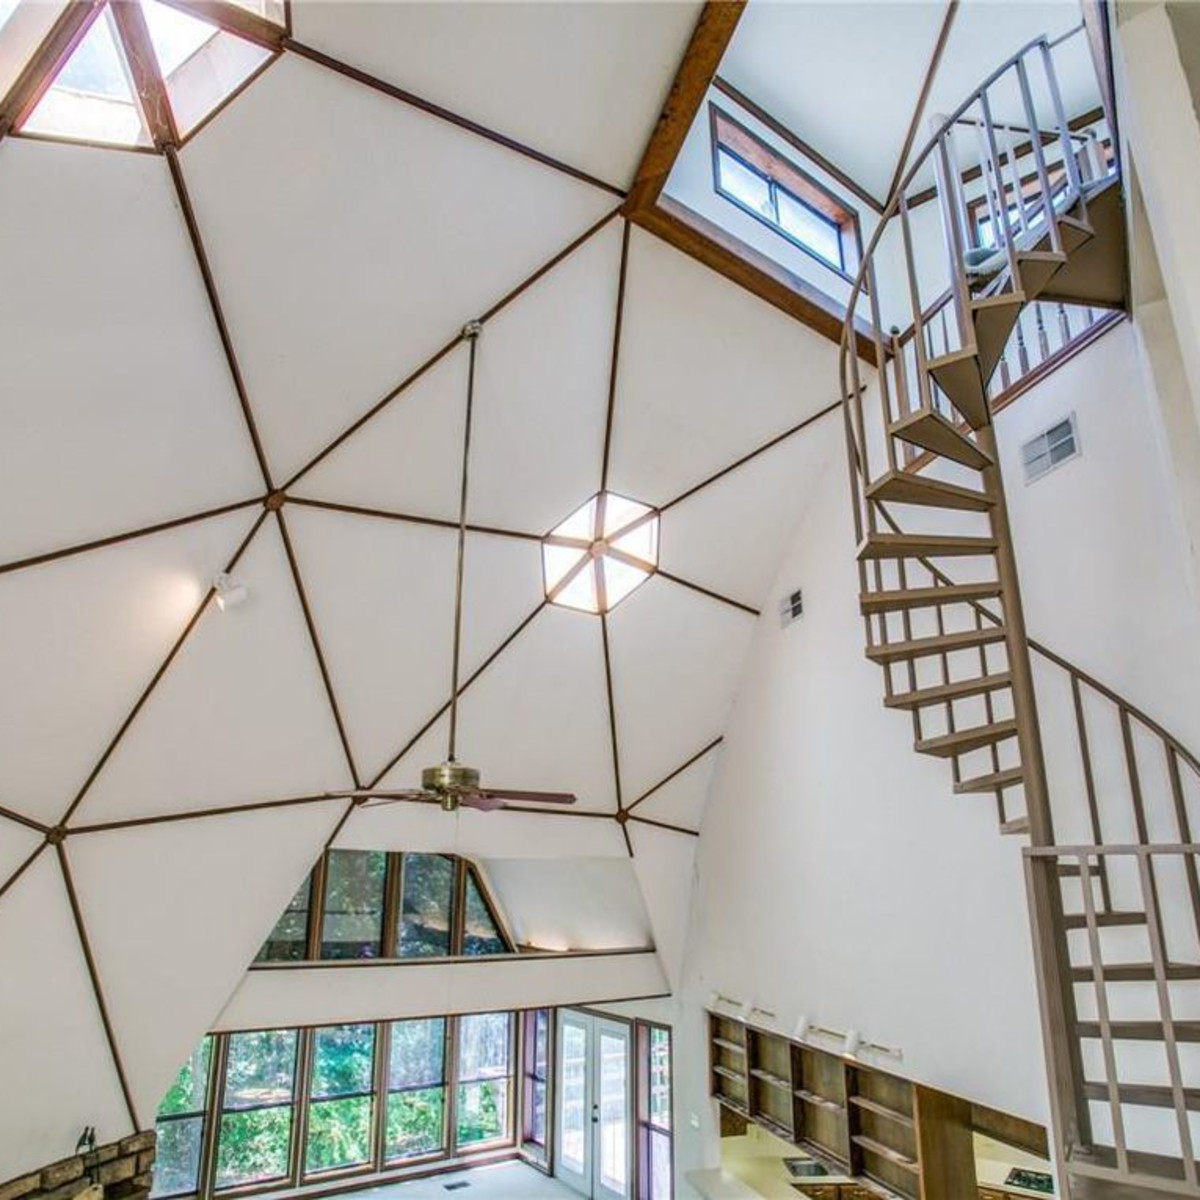 Geodesic dome house, 2056 Kimball, Southlake